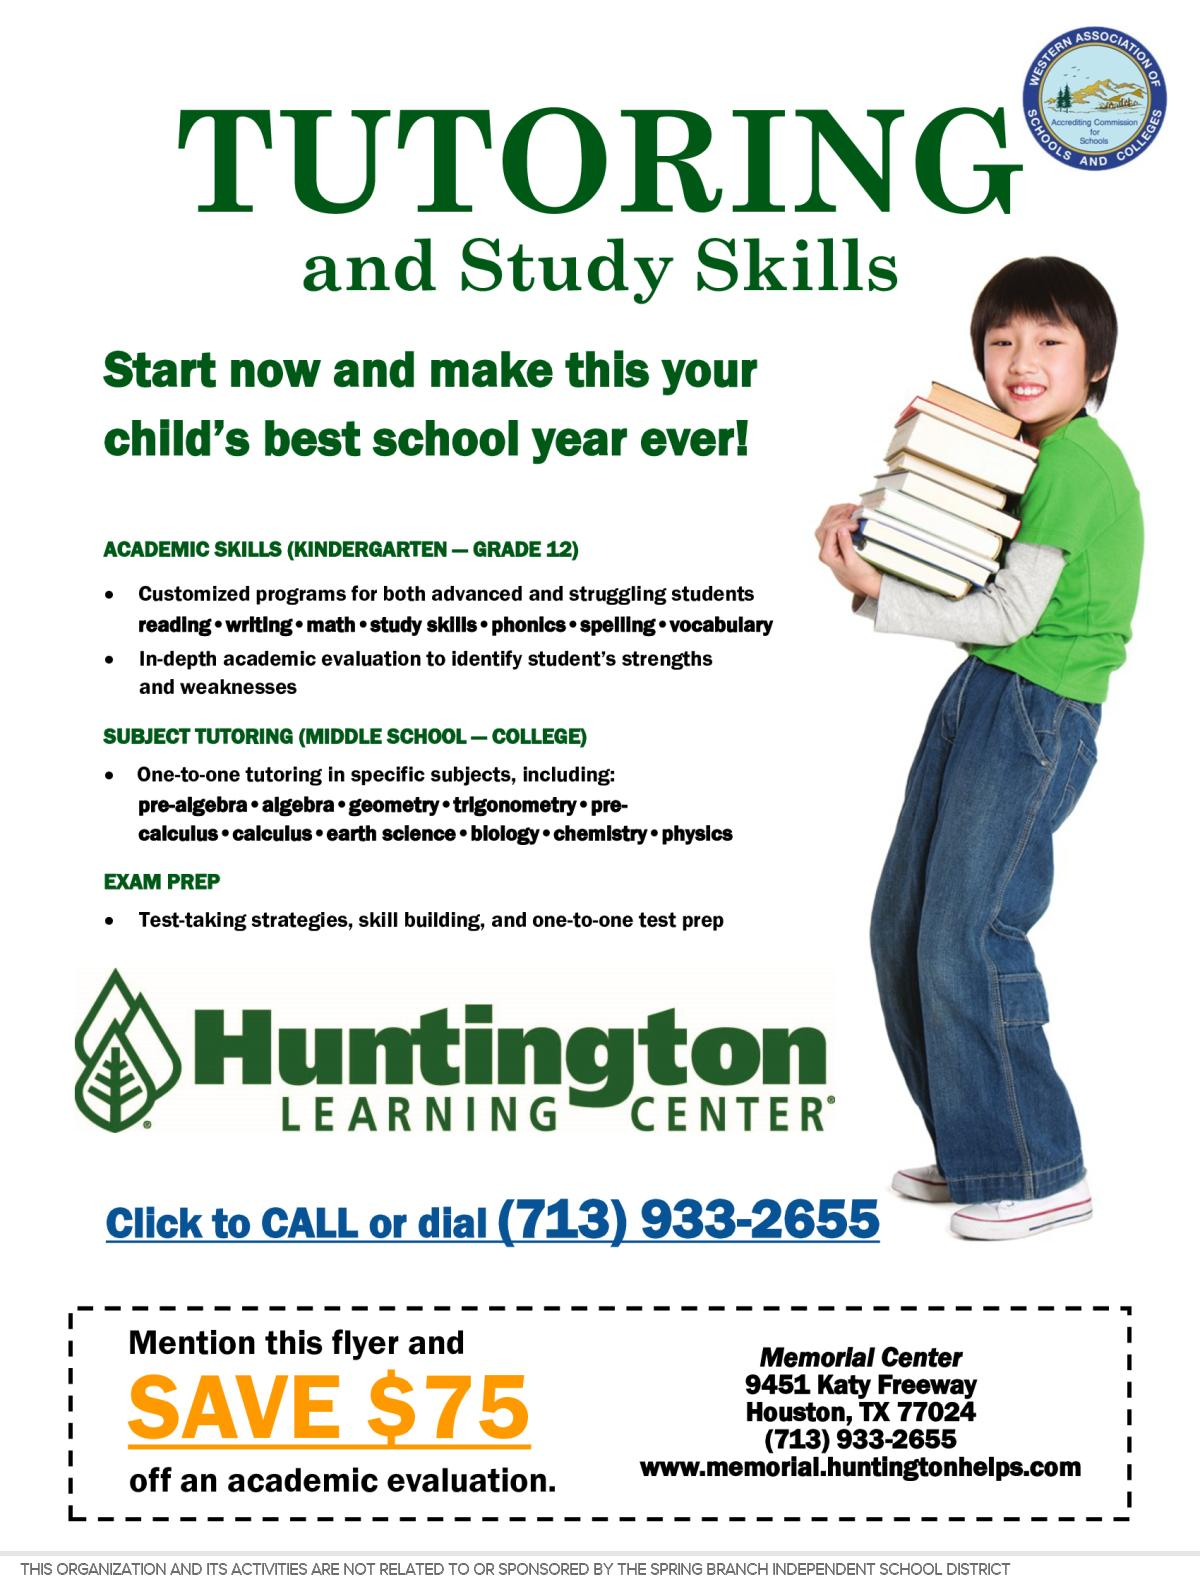 Image of a flyer titled Tutoring and Study Skills